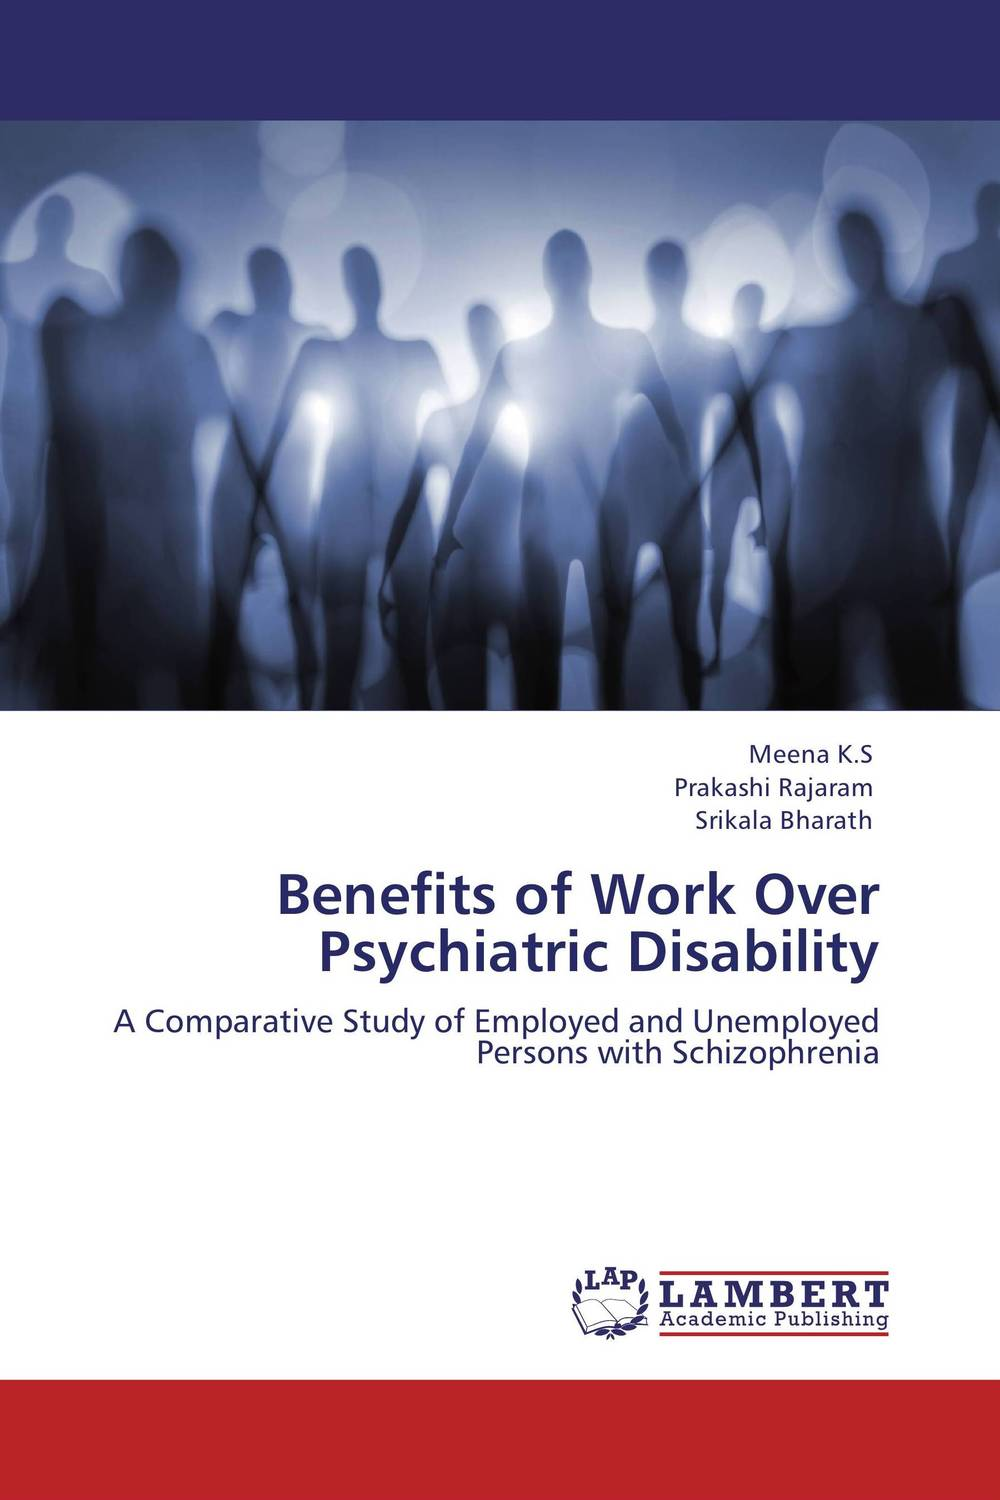 Benefits of Work Over Psychiatric Disability paula boehme the perceptions of work life balance benefits